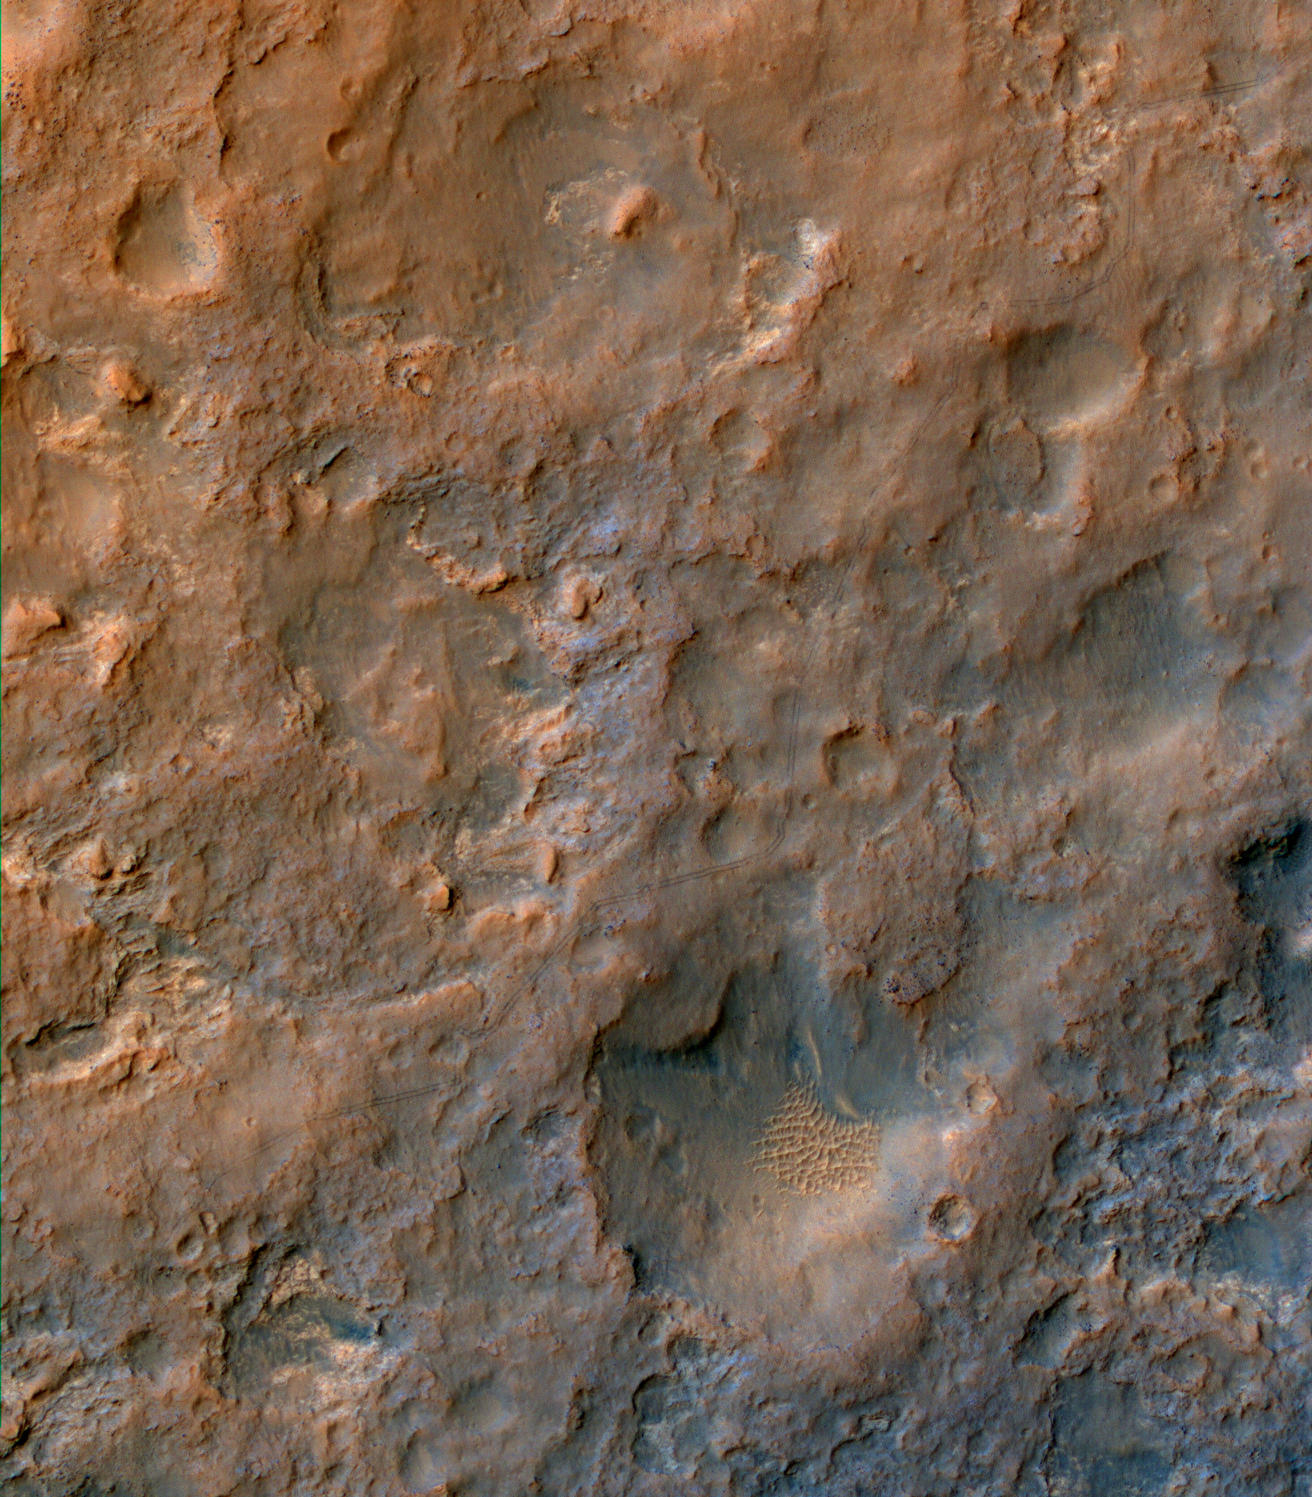 Two parallel tracks left by the wheels of NASA's Curiosity Mars rover cross rugged ground in this portion of a Dec. 11, 2013, observation by the High Resolution Imaging Science Experiment (HiRISE) camera on NASA's Mars Reconnaissance Orbiter.